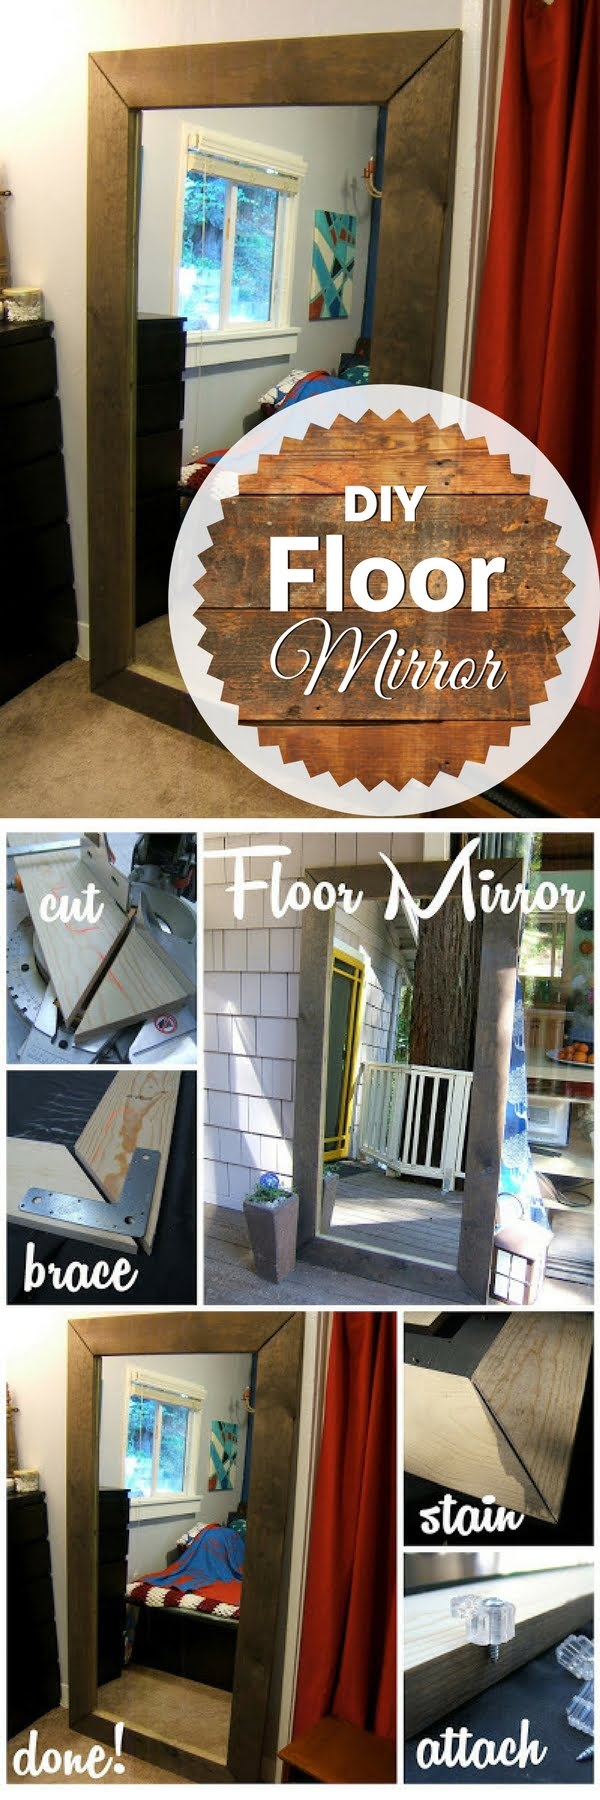 50 Fab DIY Mirror Frames You Can Easily Make Yourself - Check out how to make an easy DIY rustic floor mirror